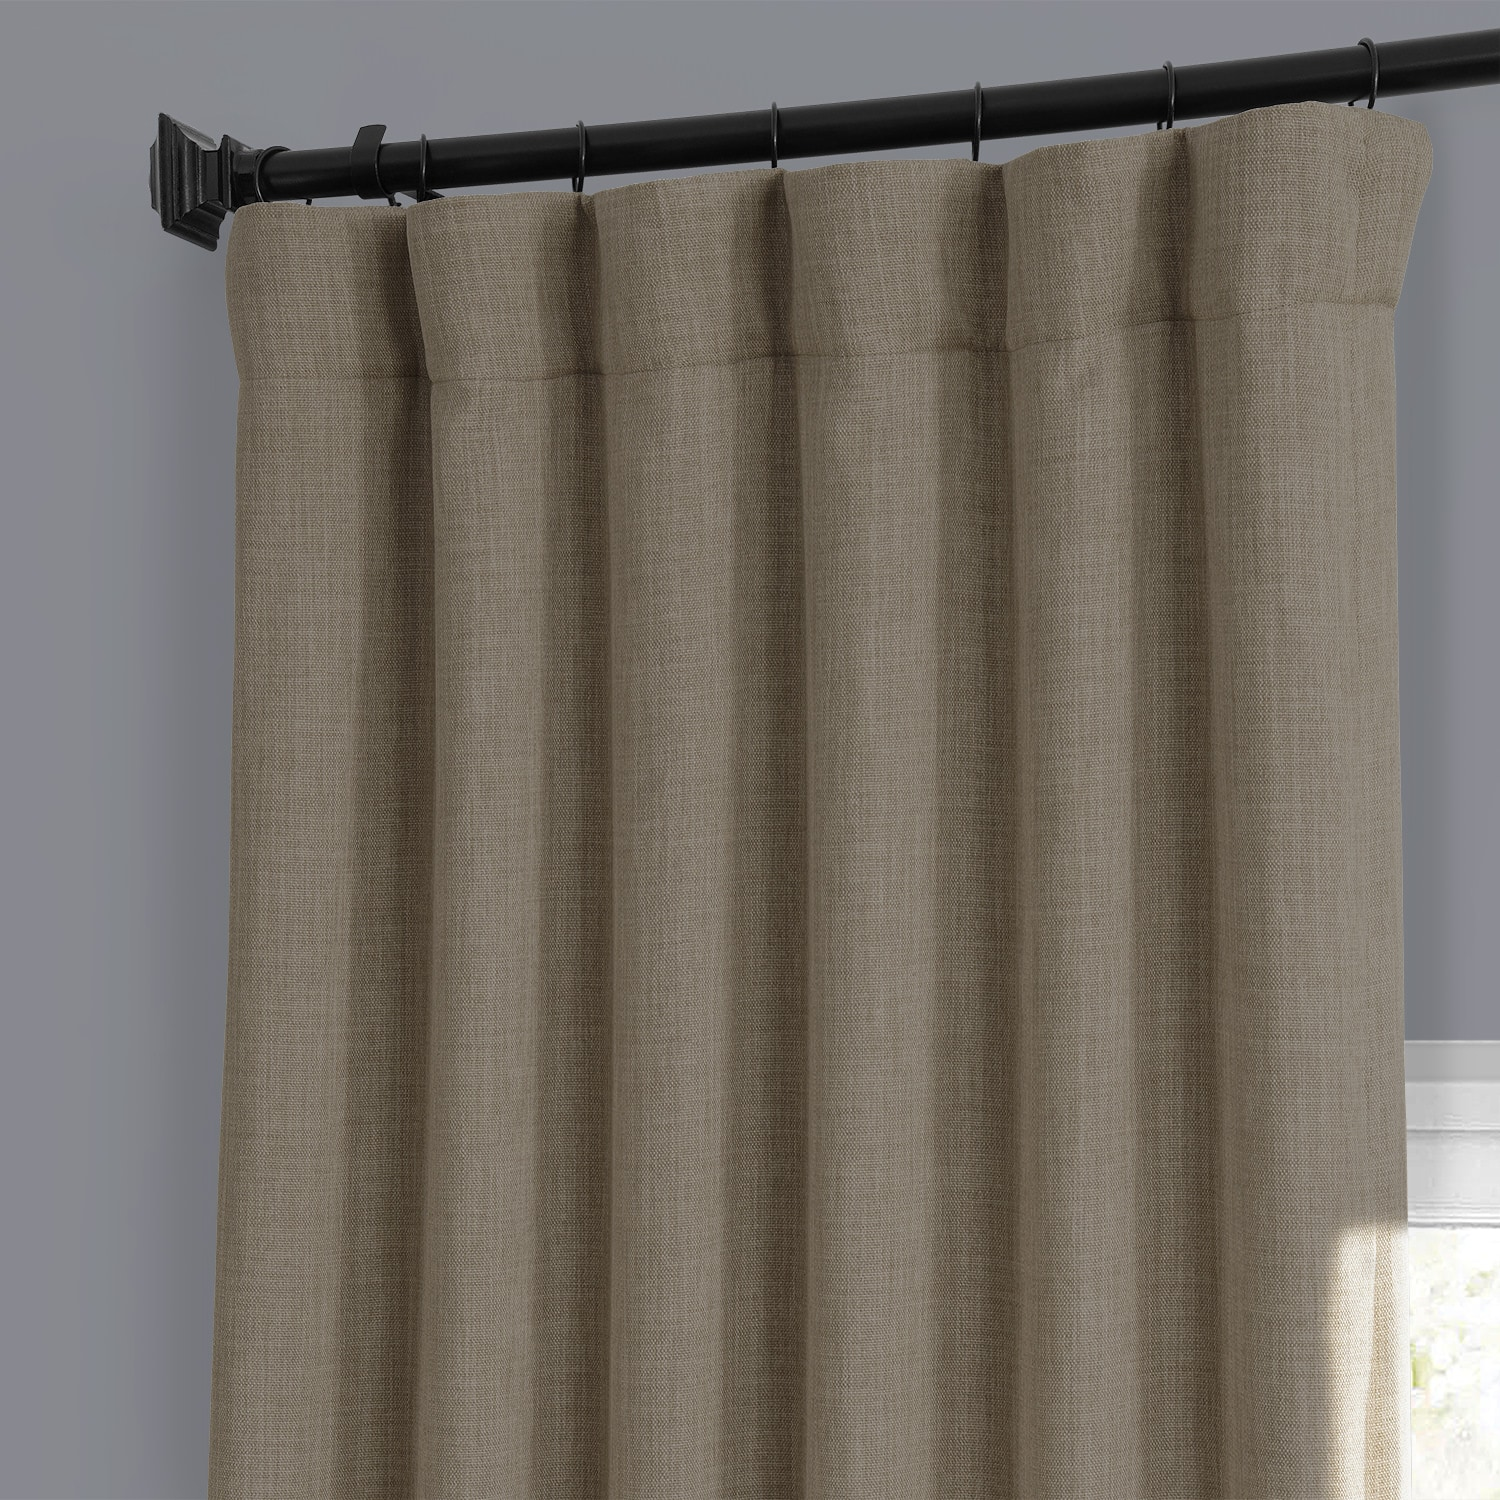 Nomad Tan Faux Linen Blackout Room Darkening Curtain